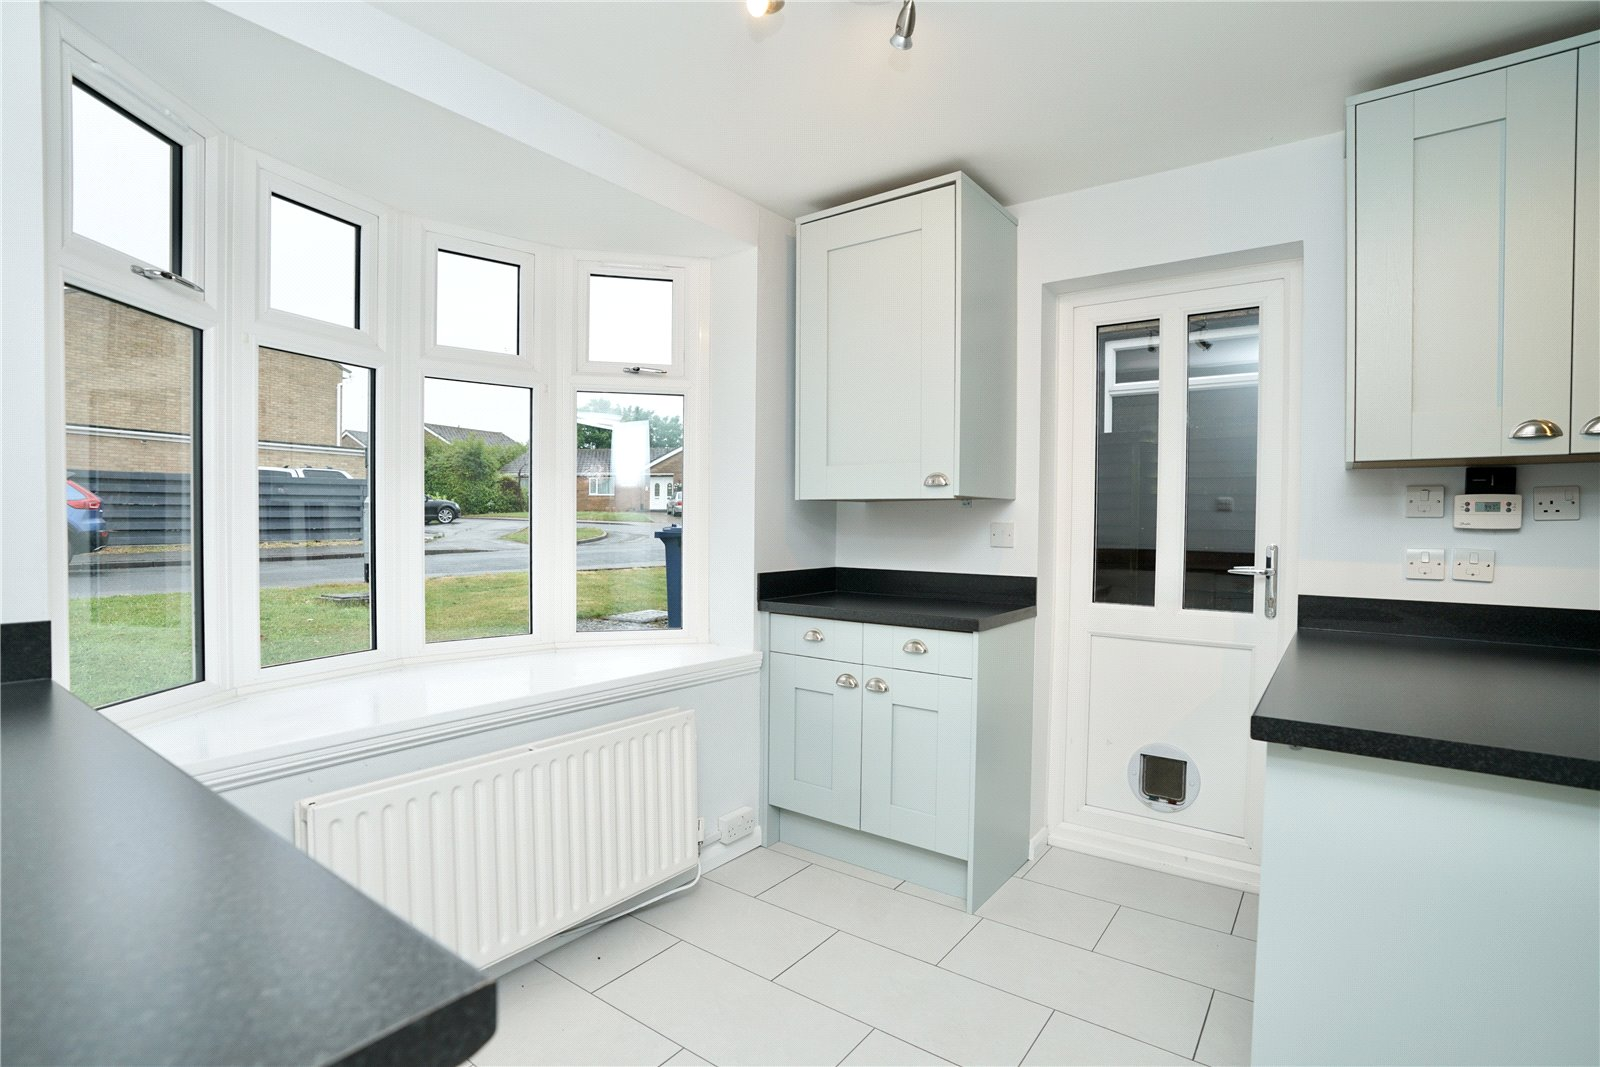 4 bed house for sale in Lakeside Close, Perry  - Property Image 7